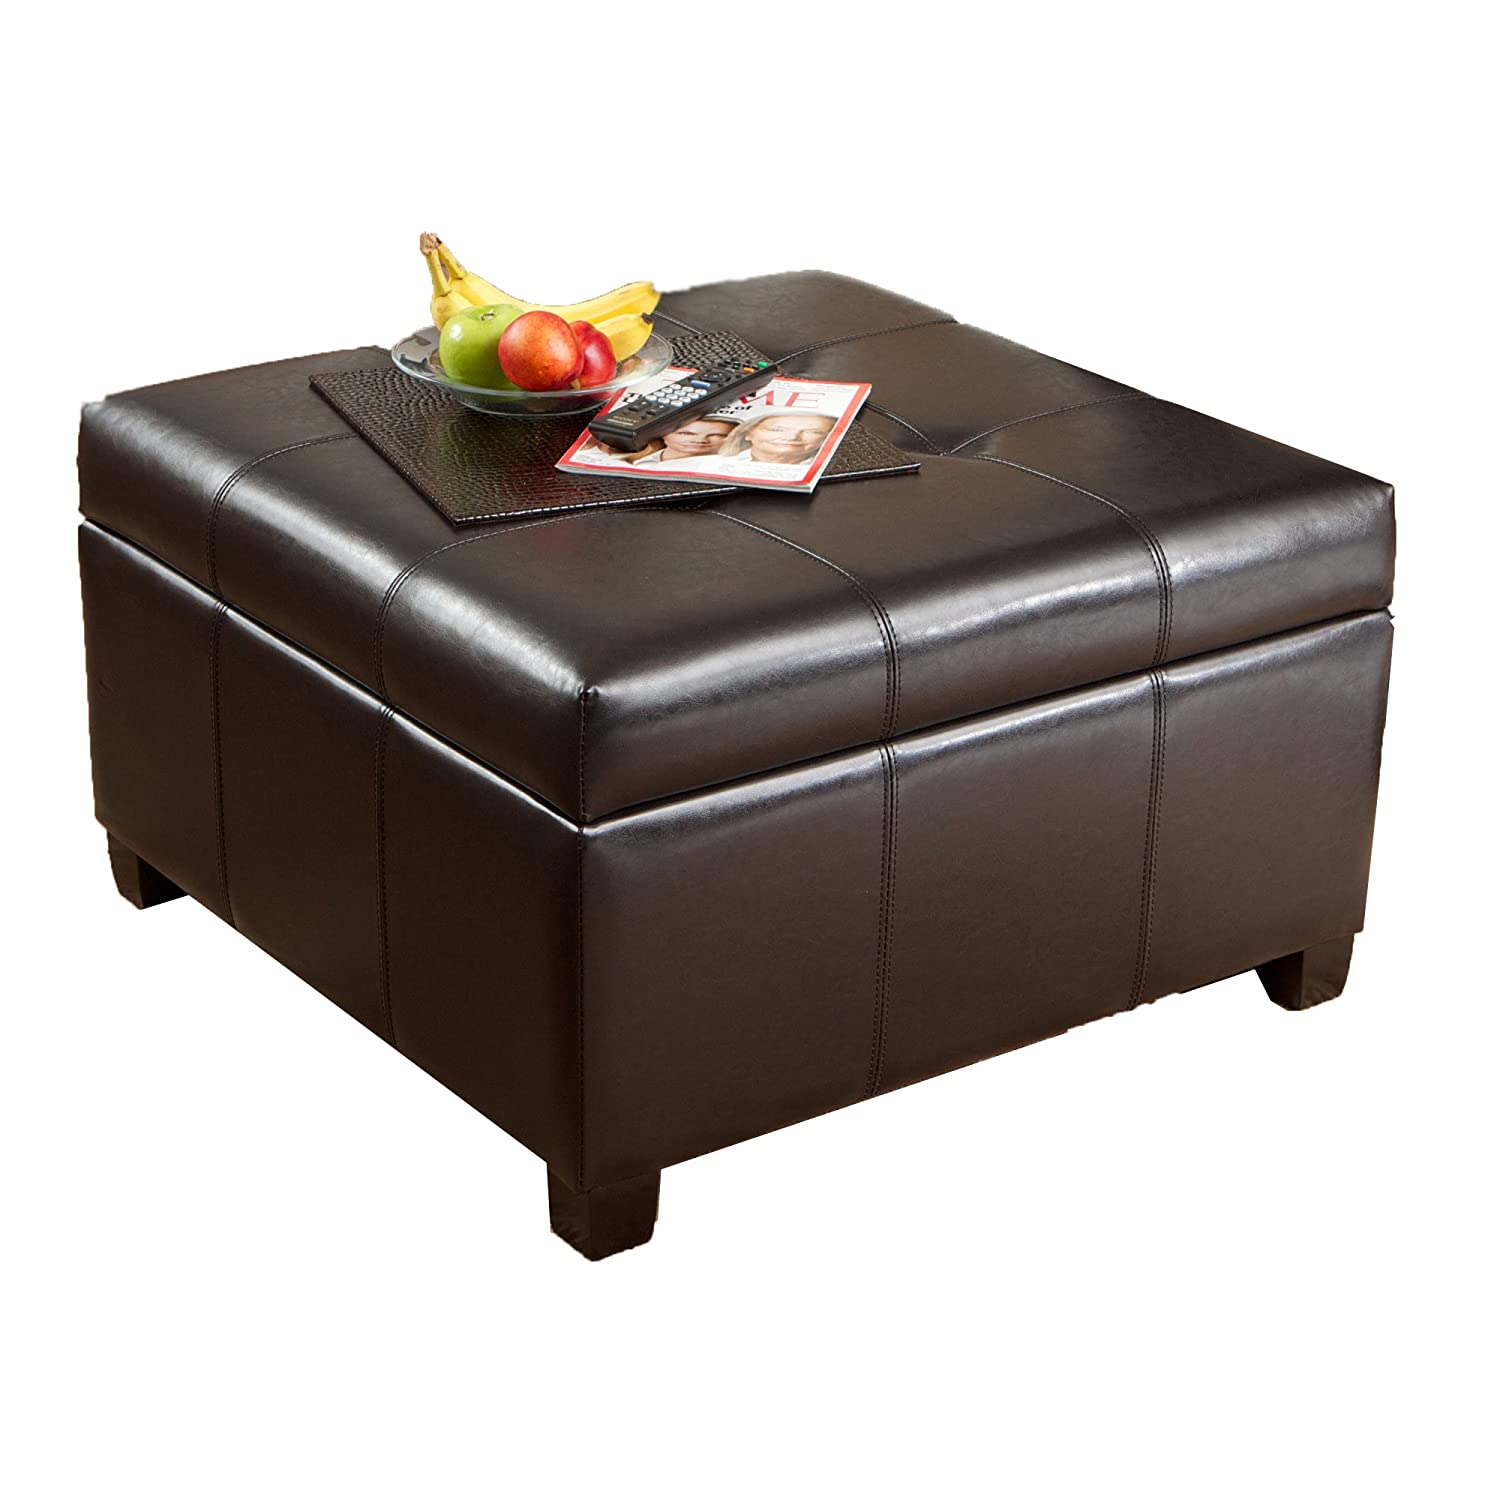 Amazon.com: Best Selling | Storage Ottoman | Coffee Table | Square Shaped |  Premium Bonded Leather In Espresso Brown: Kitchen U0026 Dining